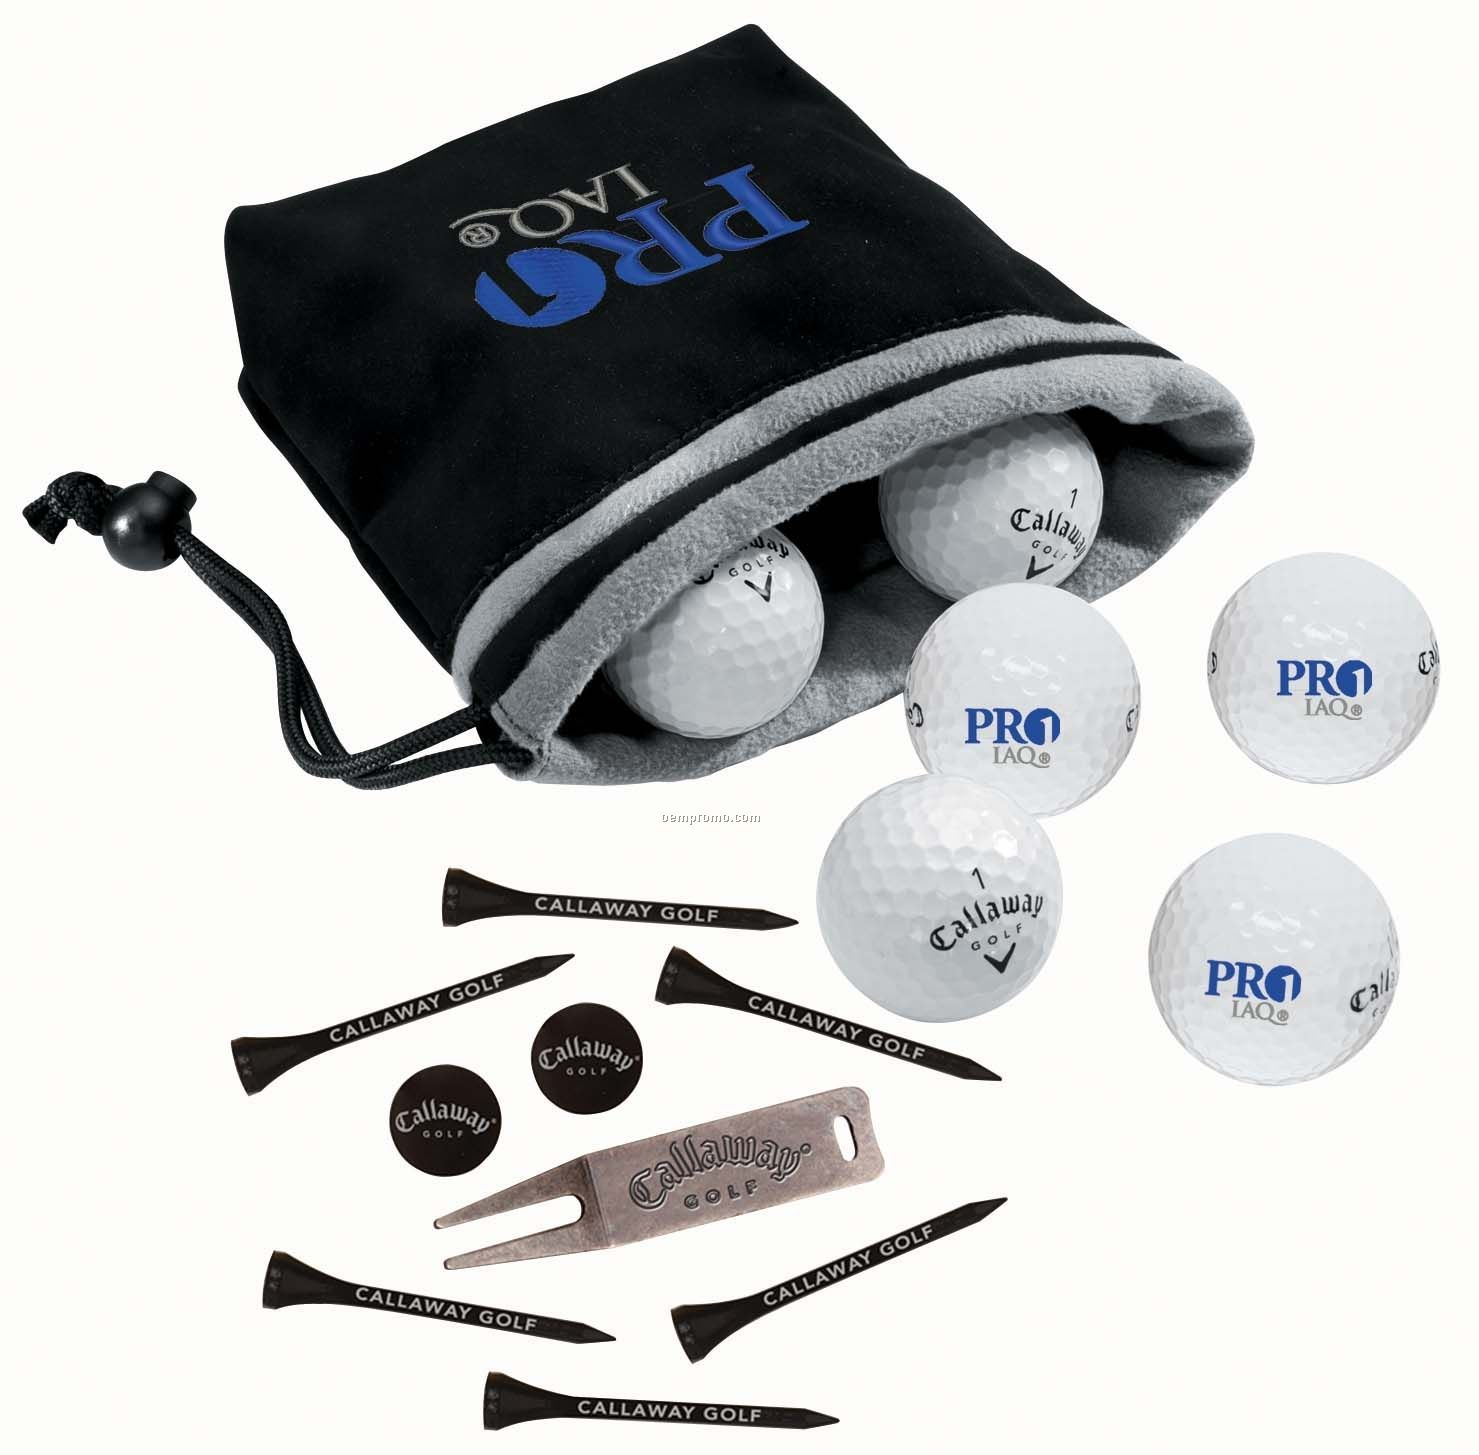 Callaway Tour I(Z) 6 Golf Ball Valuables Pouch W/ 6 Long Tees & Divot Tool